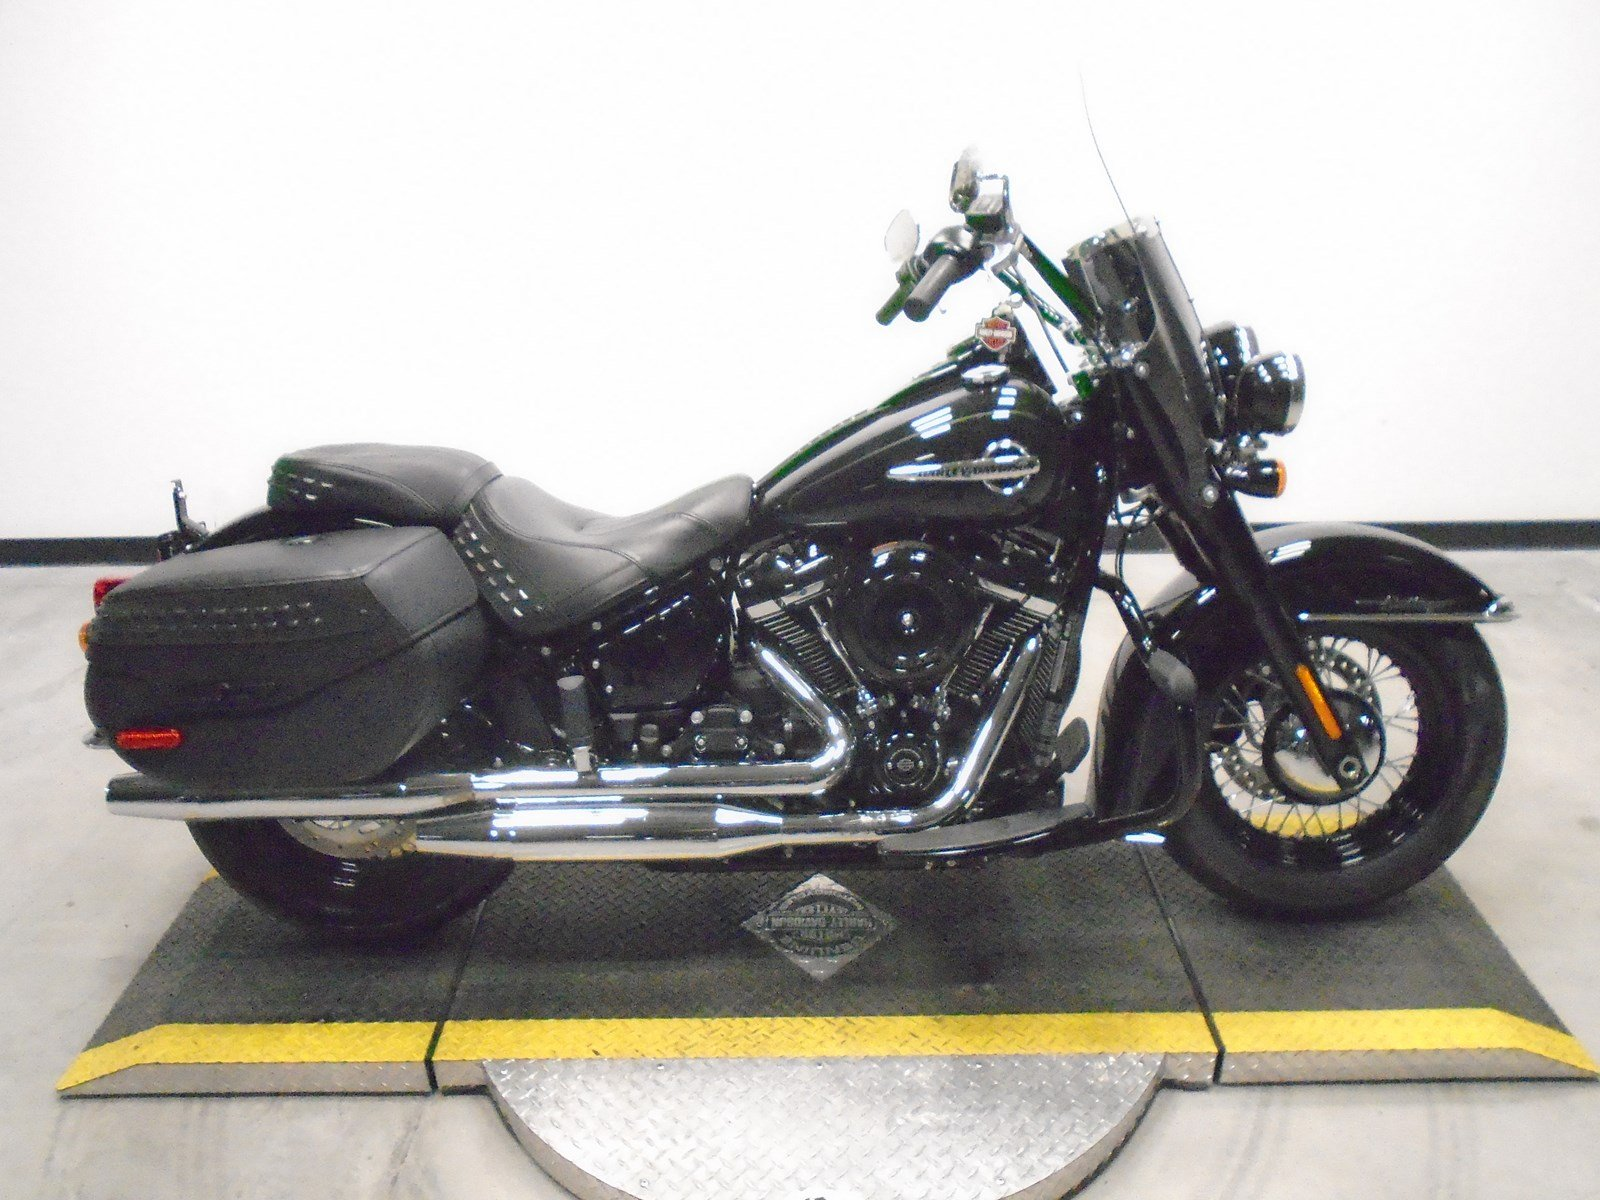 Pre-Owned 2018 Harley Davidson Road King Classic FLHRC